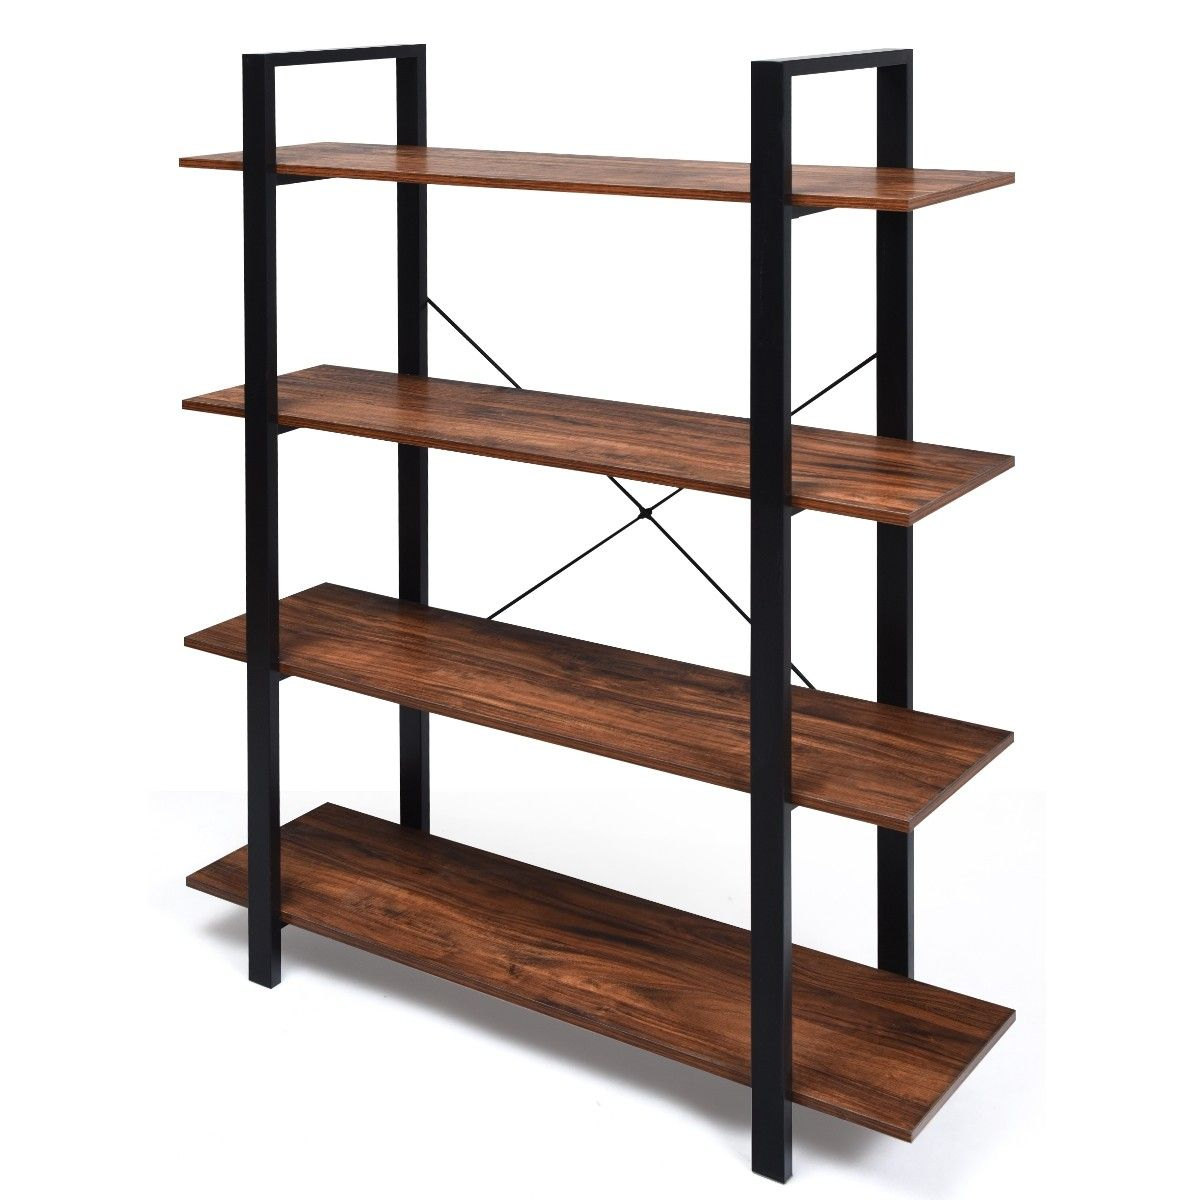 4 Tiers Bookshelf Industrial Bookcases Metal Frame Shelf Stand 109 95 Free Shipping It Is Made Of P2 Gr Metal Bookcase Wood Bookshelves Industrial Bookcases